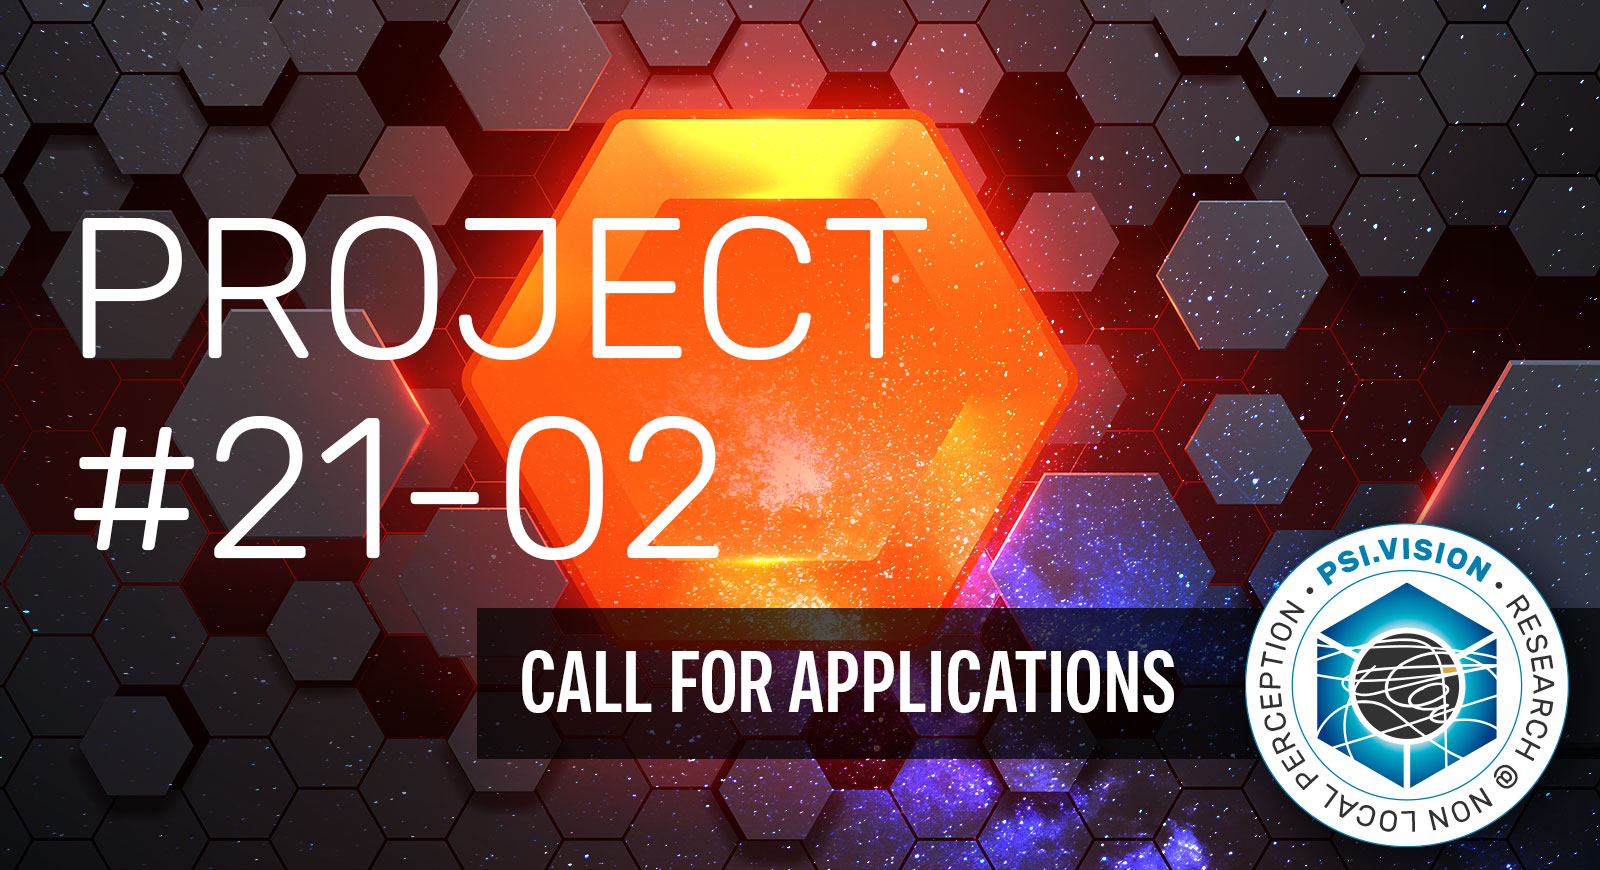 PSI.vision | call for applications project #21-02